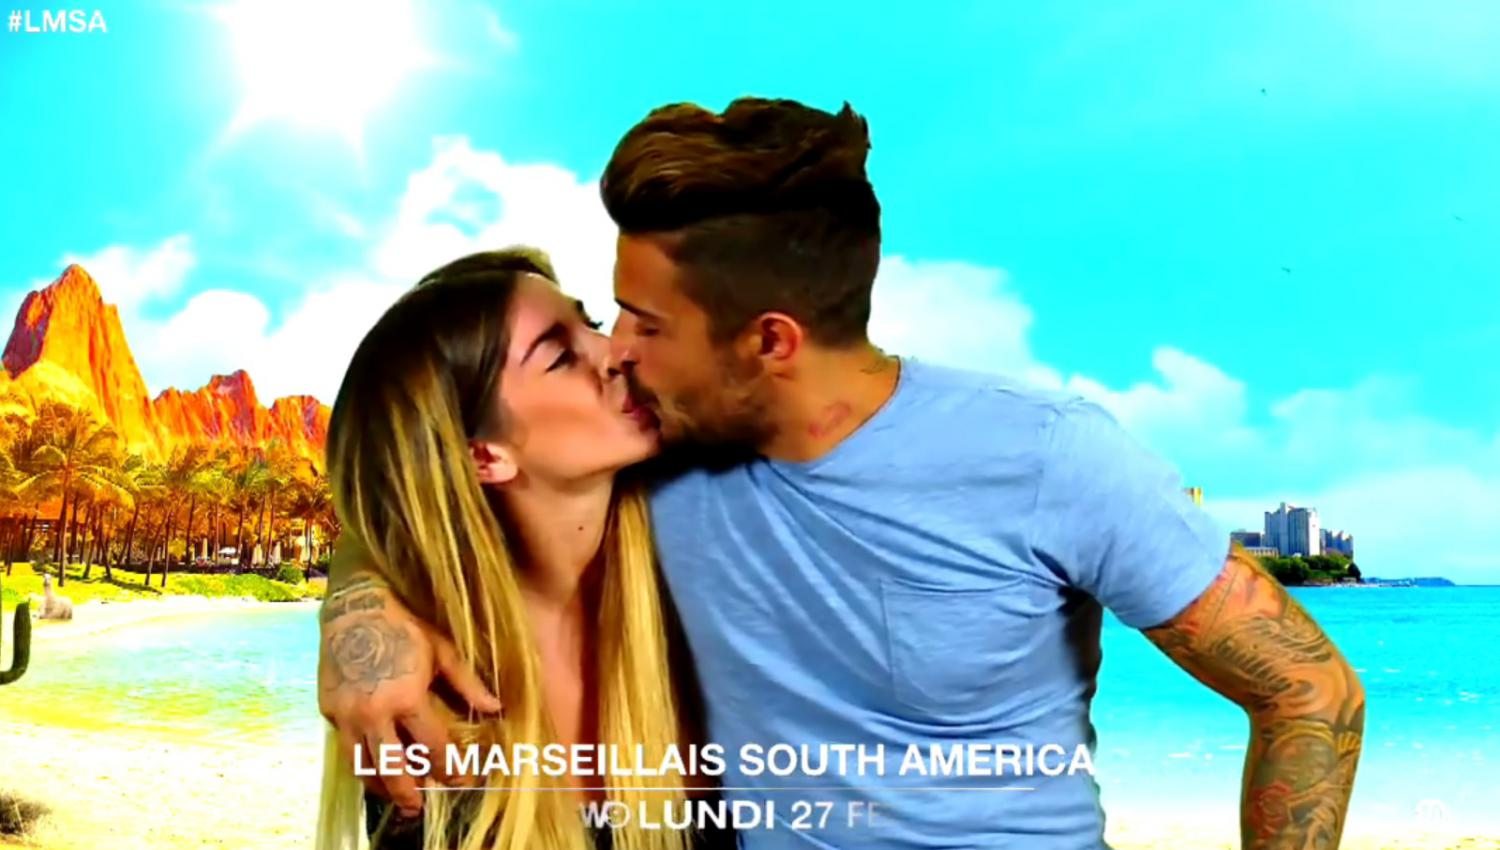 les_marseillais_south_america_-_julien_et_liam_en_couple.jpg (1500×850)